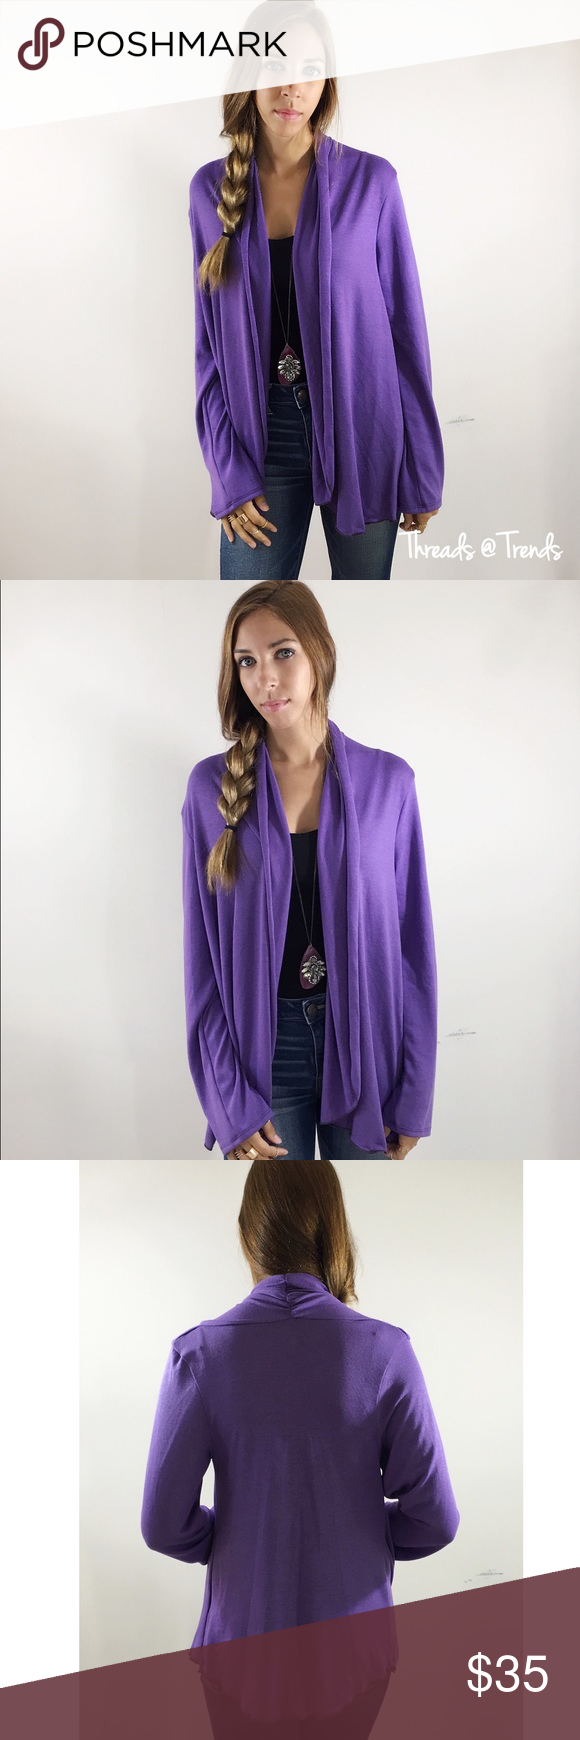 Purple Cardigan Sweater Boutique | Sweater cardigan, Back to and ...